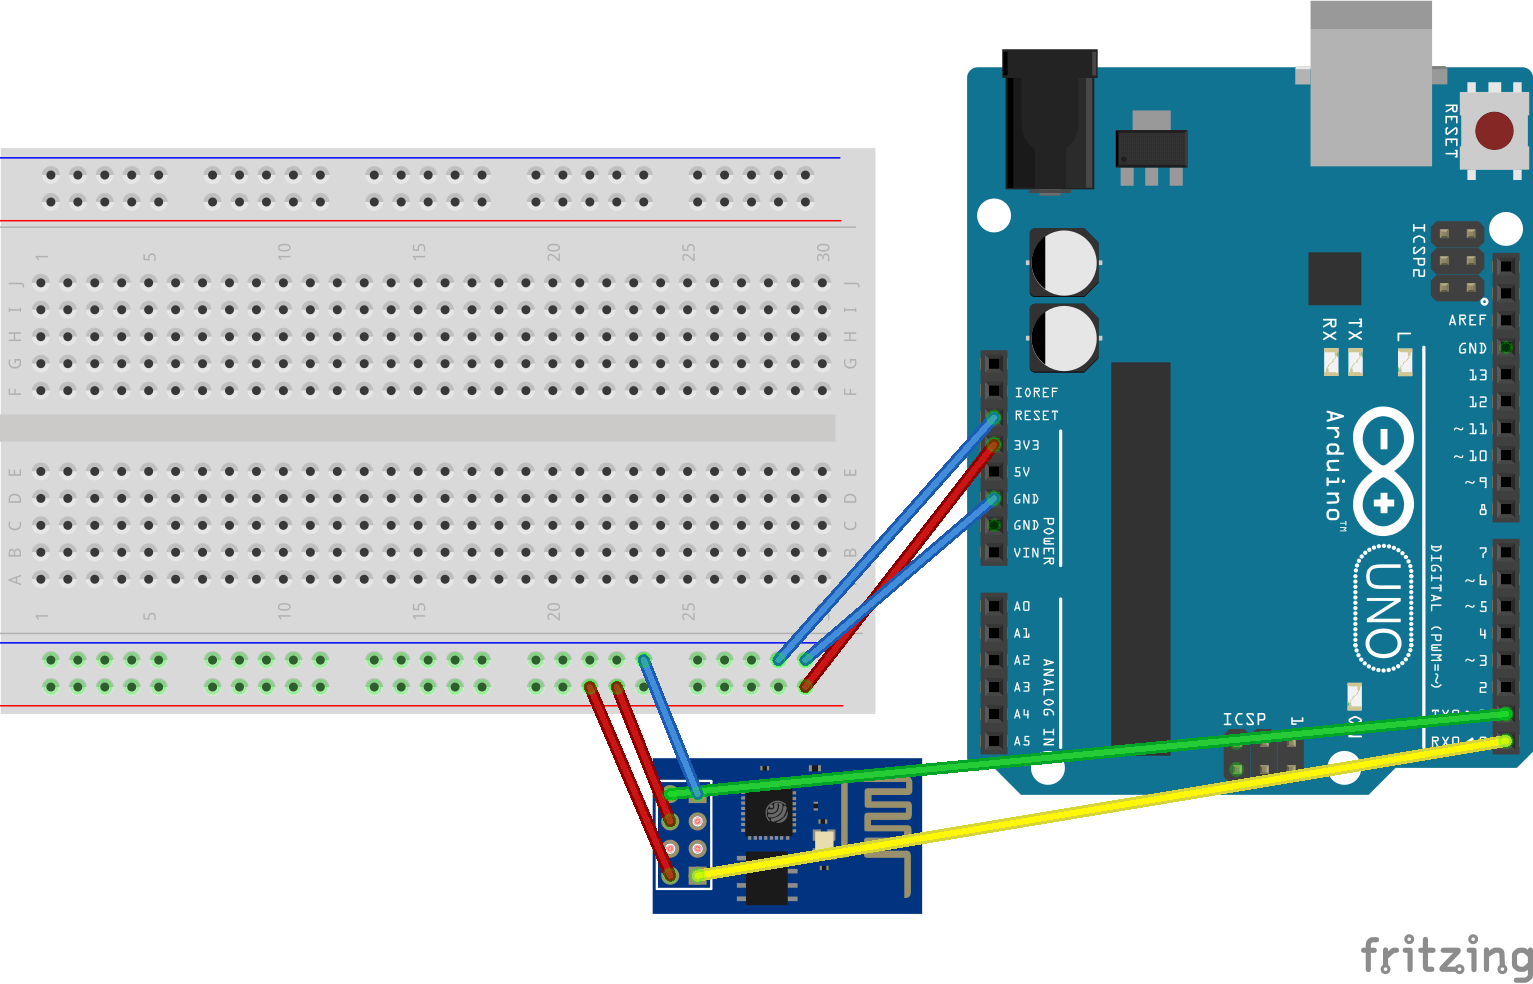 How To Communicate With Esp8266 Via Arduino Uno